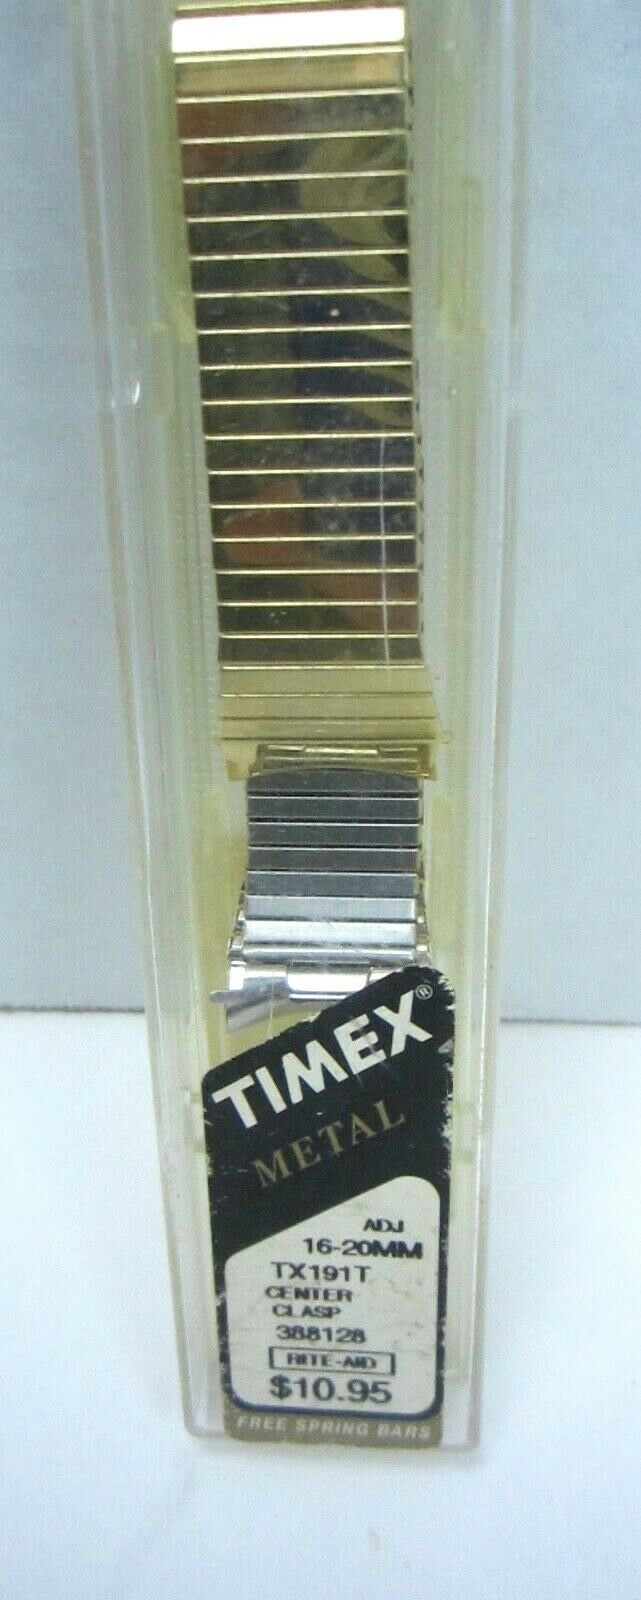 Primary image for Timex Expansion Watch Band TX191T VINTAGE 16mm-20MM Stainless steel Yellow NOS